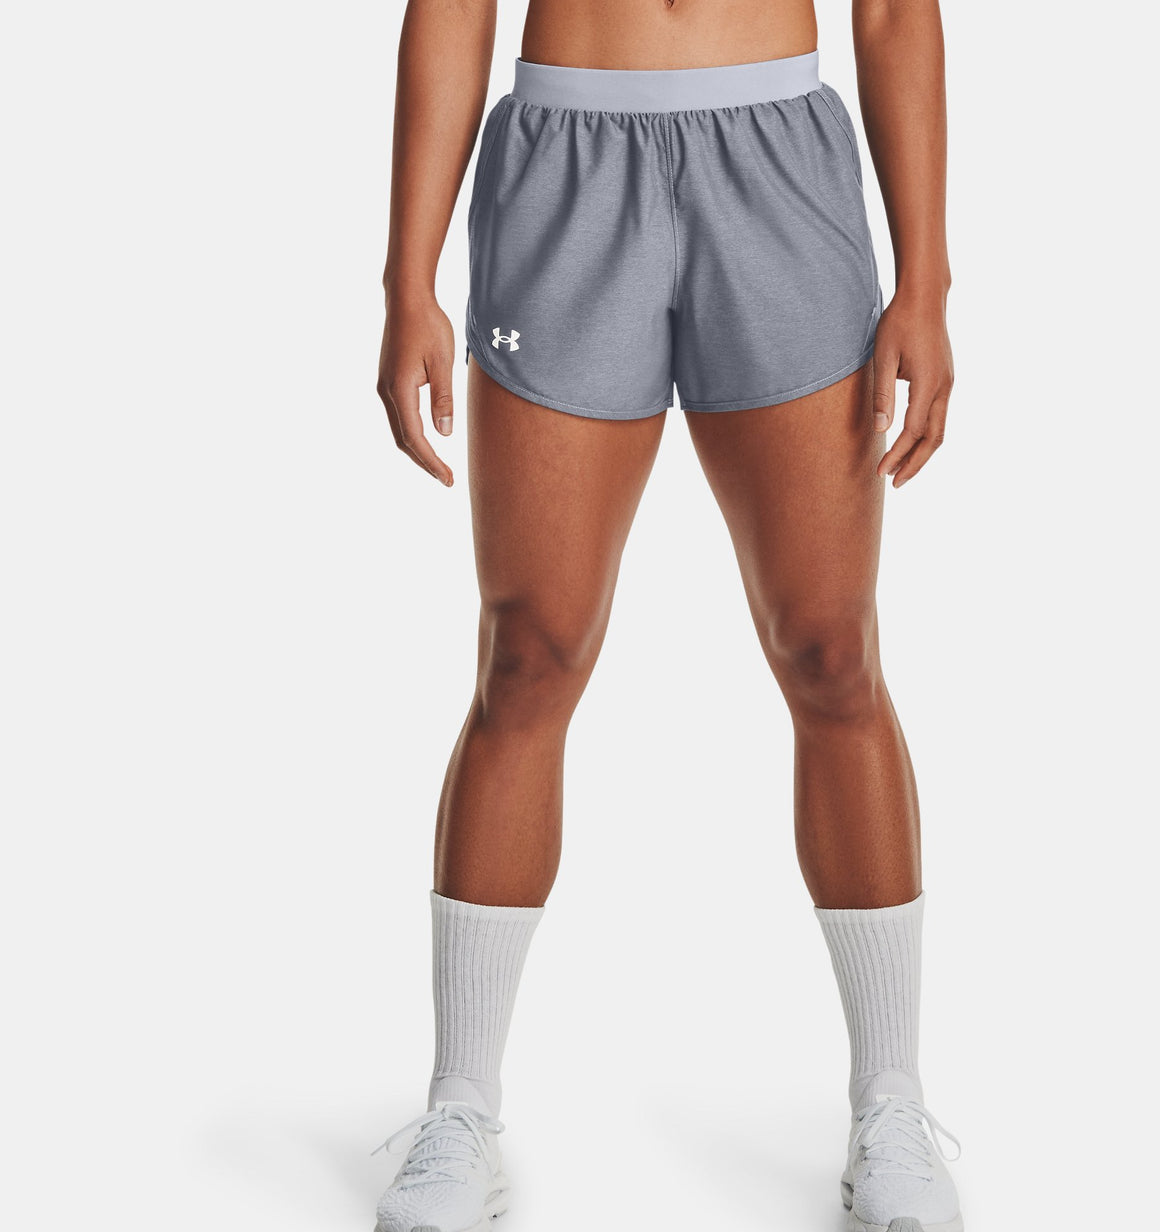 Under Armour Women's Fly-By 2.0 Shorts